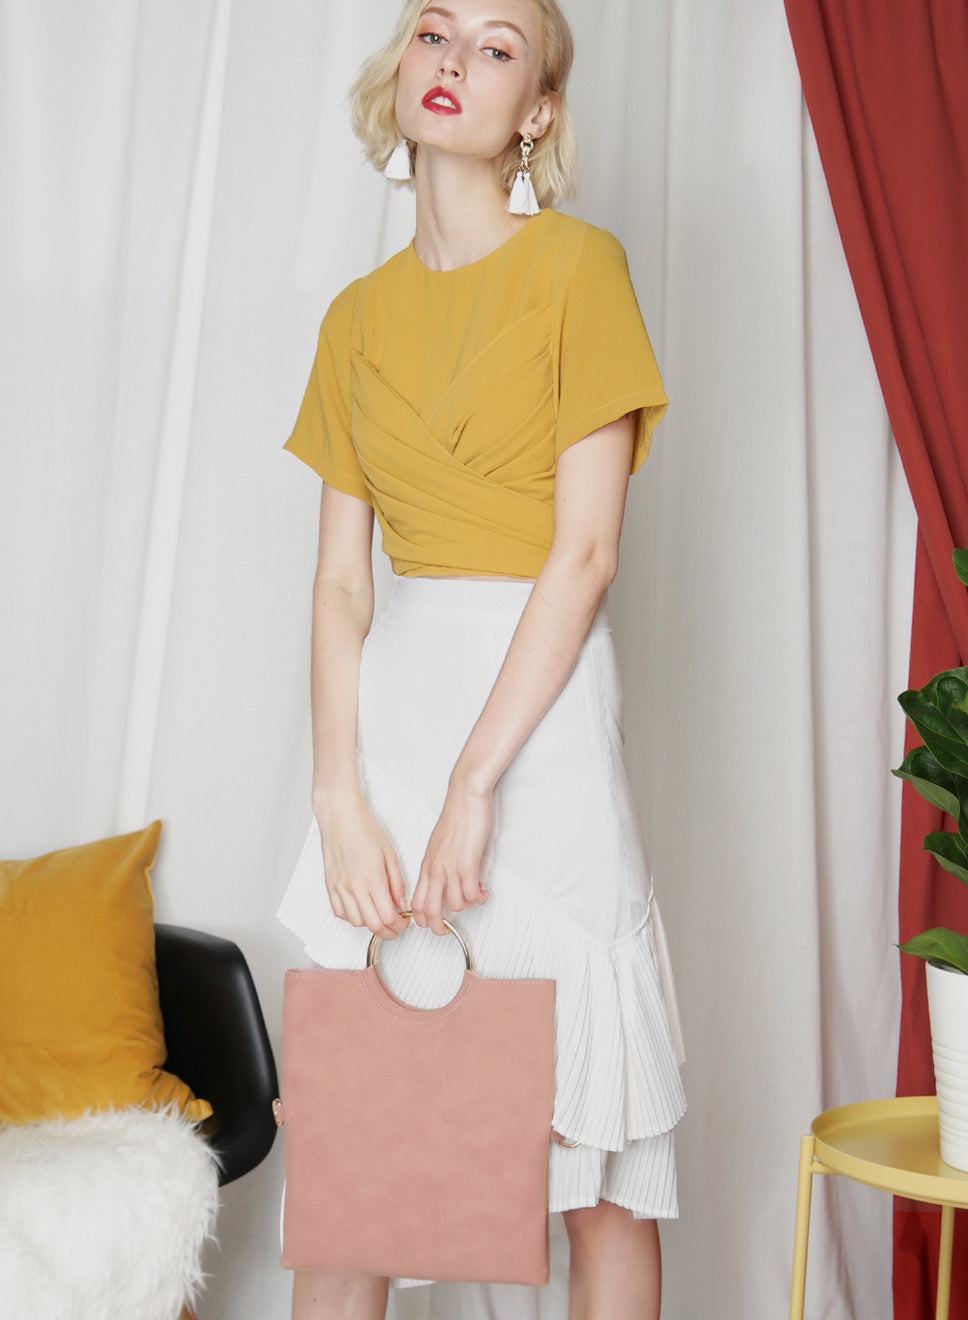 Nova Suede Foldover Clutch (Blush) at $ 32.00 only sold at And Well Dressed Online Fashion Store Singapore